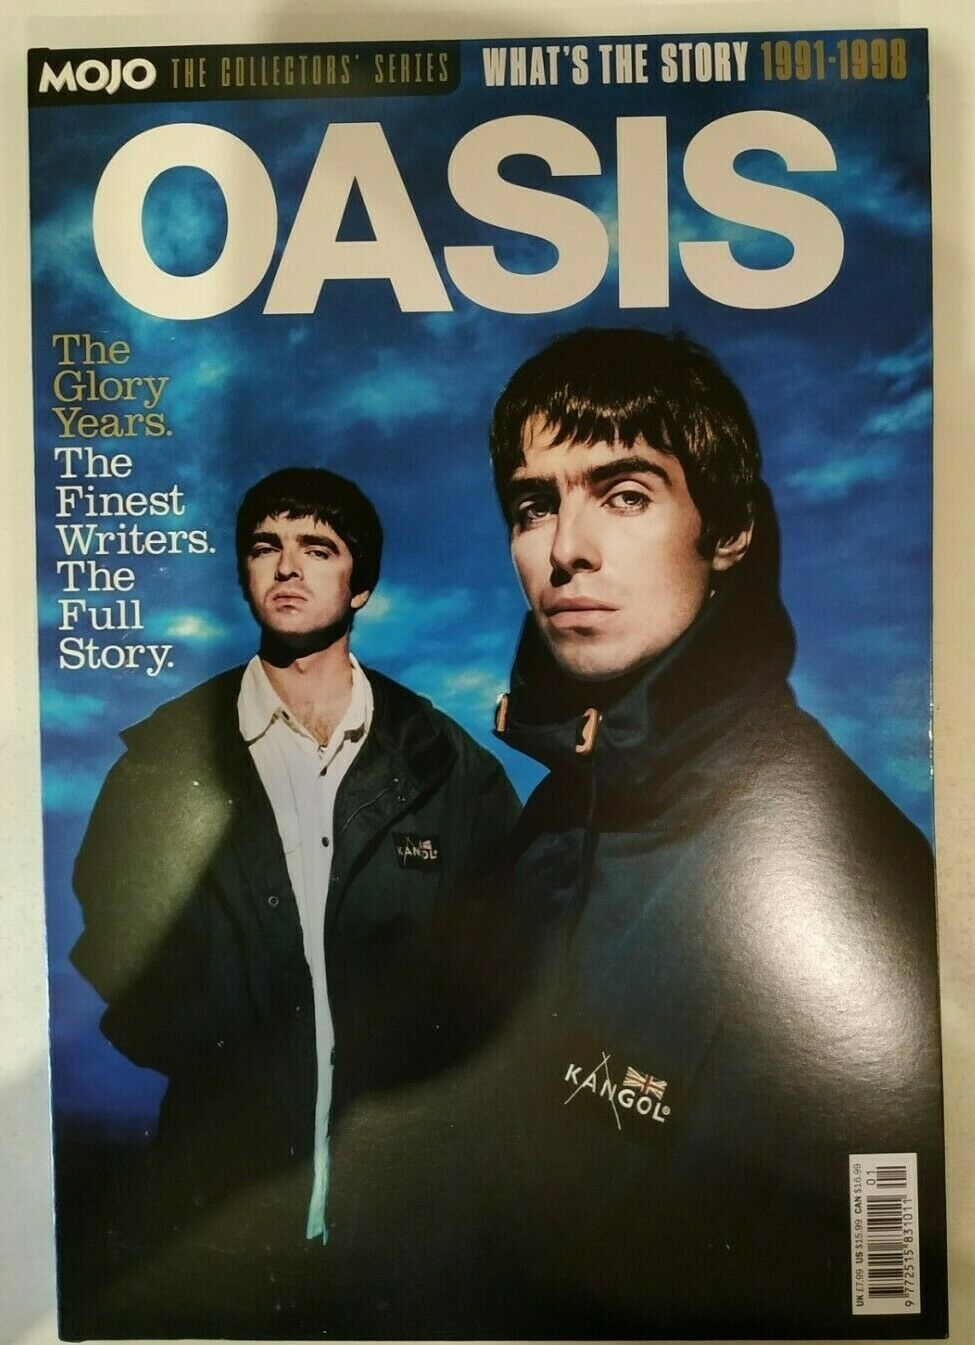 UK MOJO Collector's Series February 2021: OASIS 1991-1998 Noel / Liam Gallagher